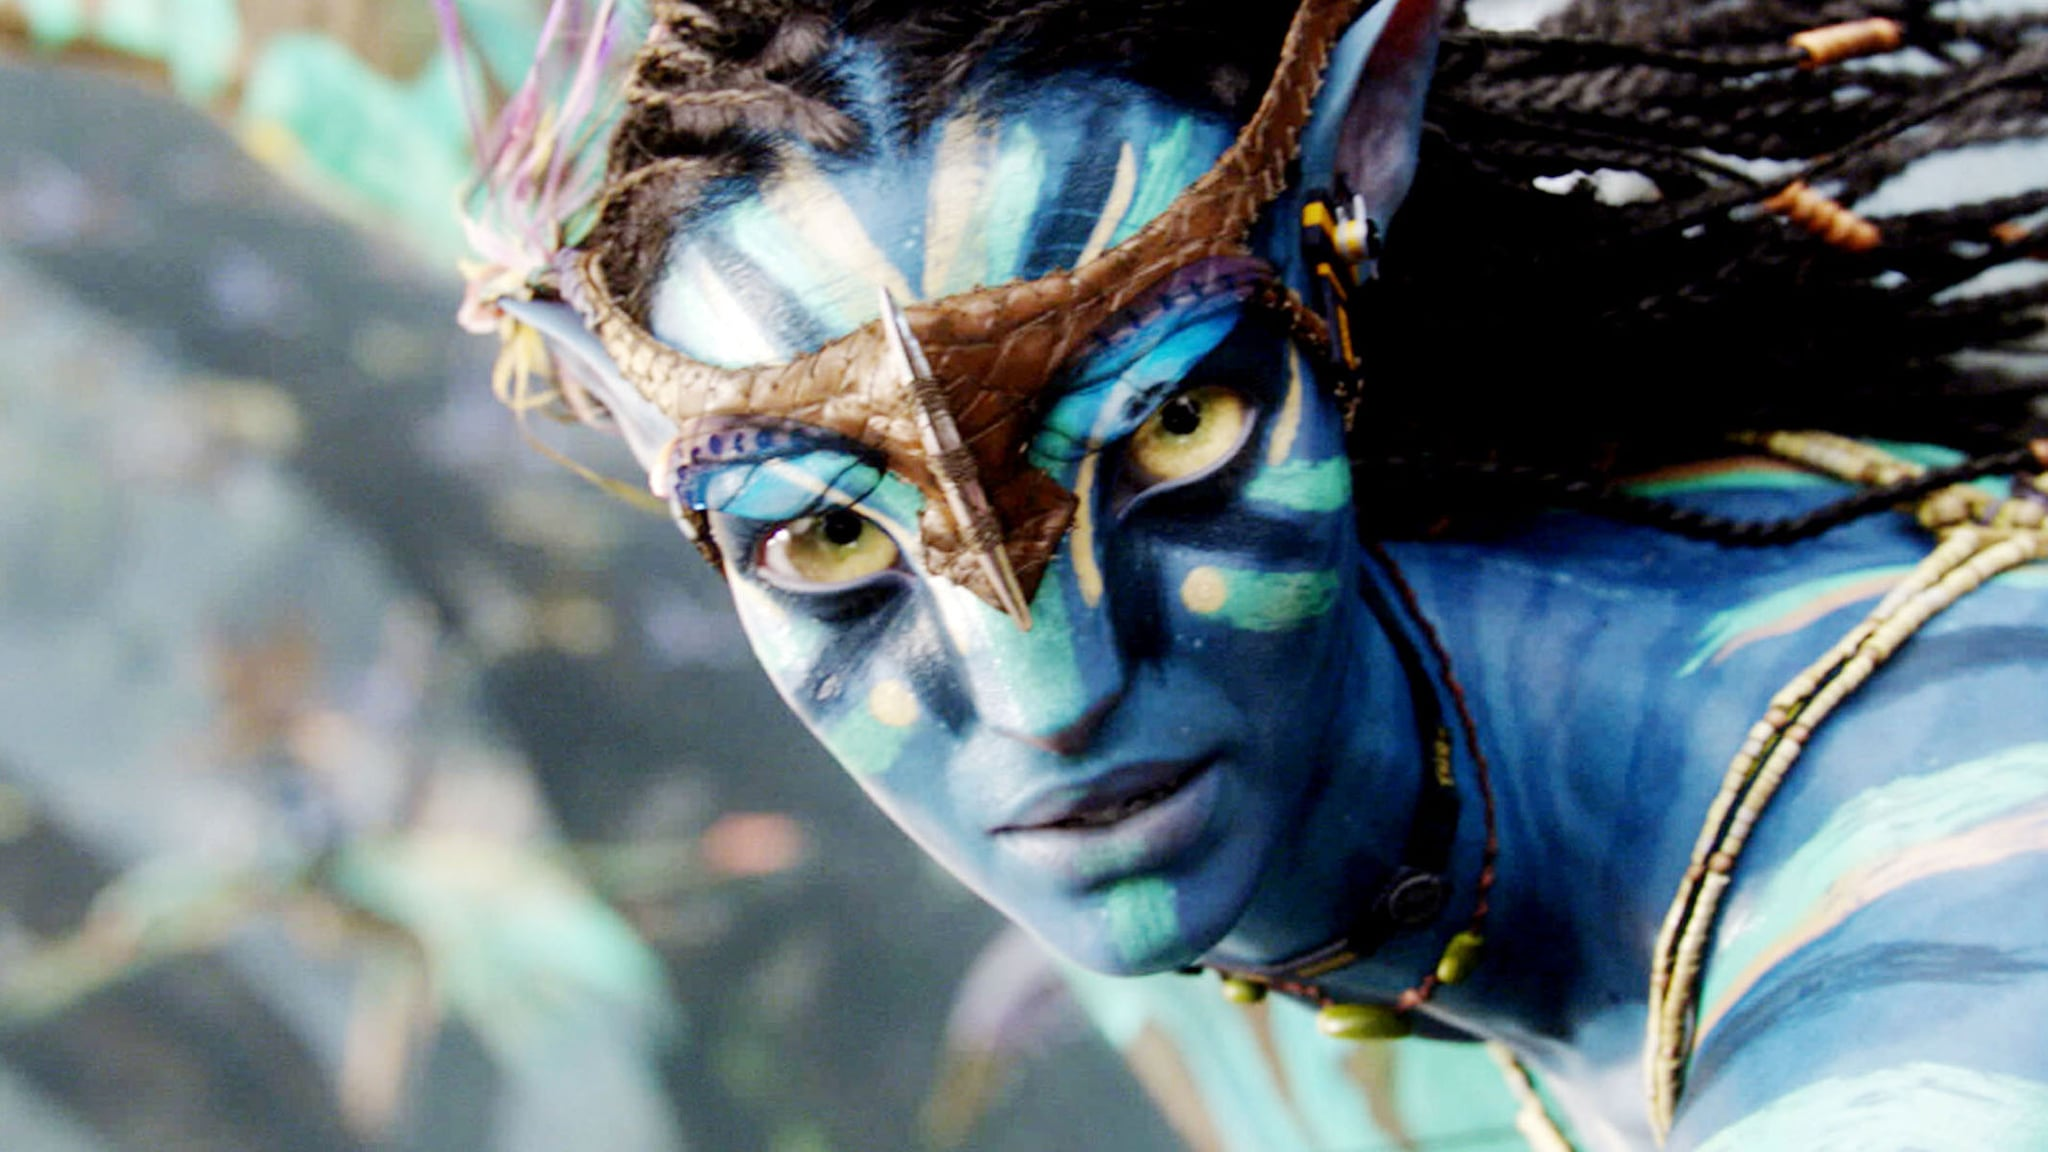 AVATAR, Zoe Saldana, 2009. TM & Copyright 20th Century Fox. All rights reserved/Courtesy Everett Collection